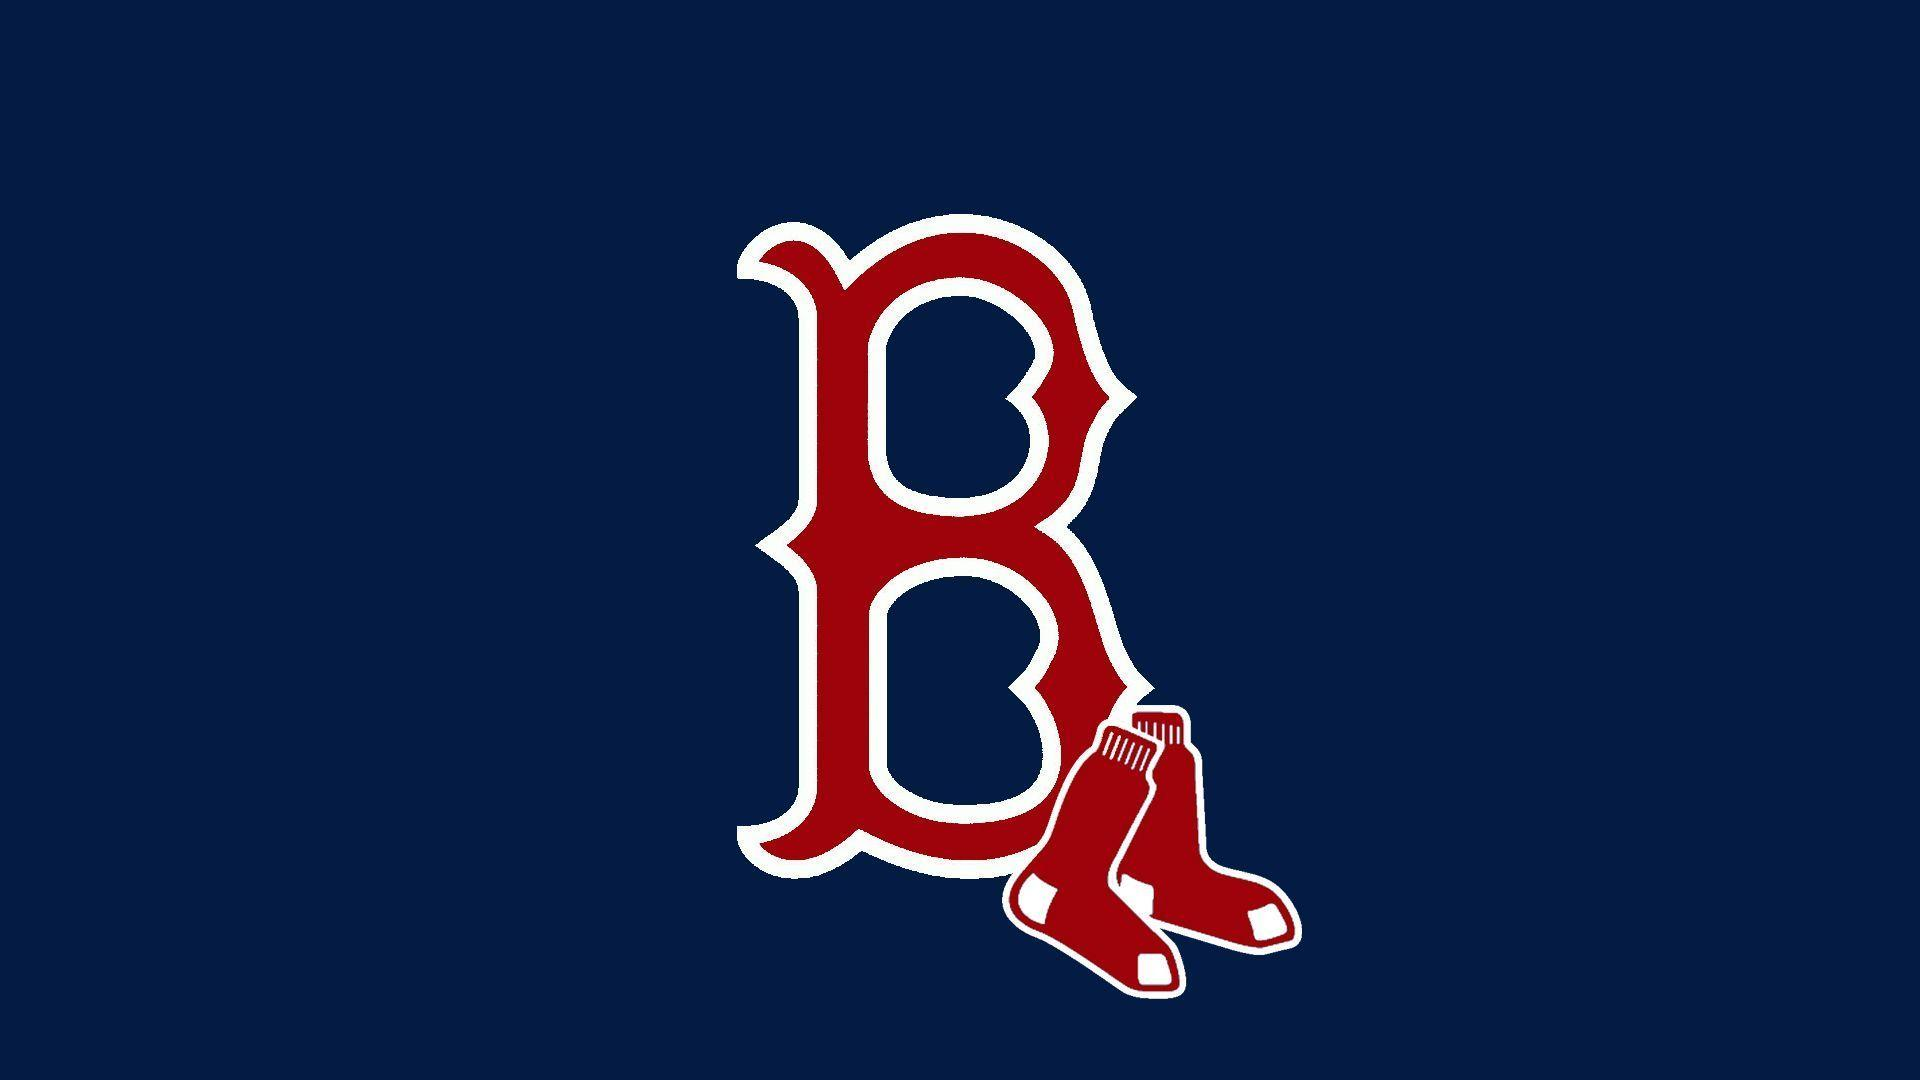 Boston Red Sox wallpapers